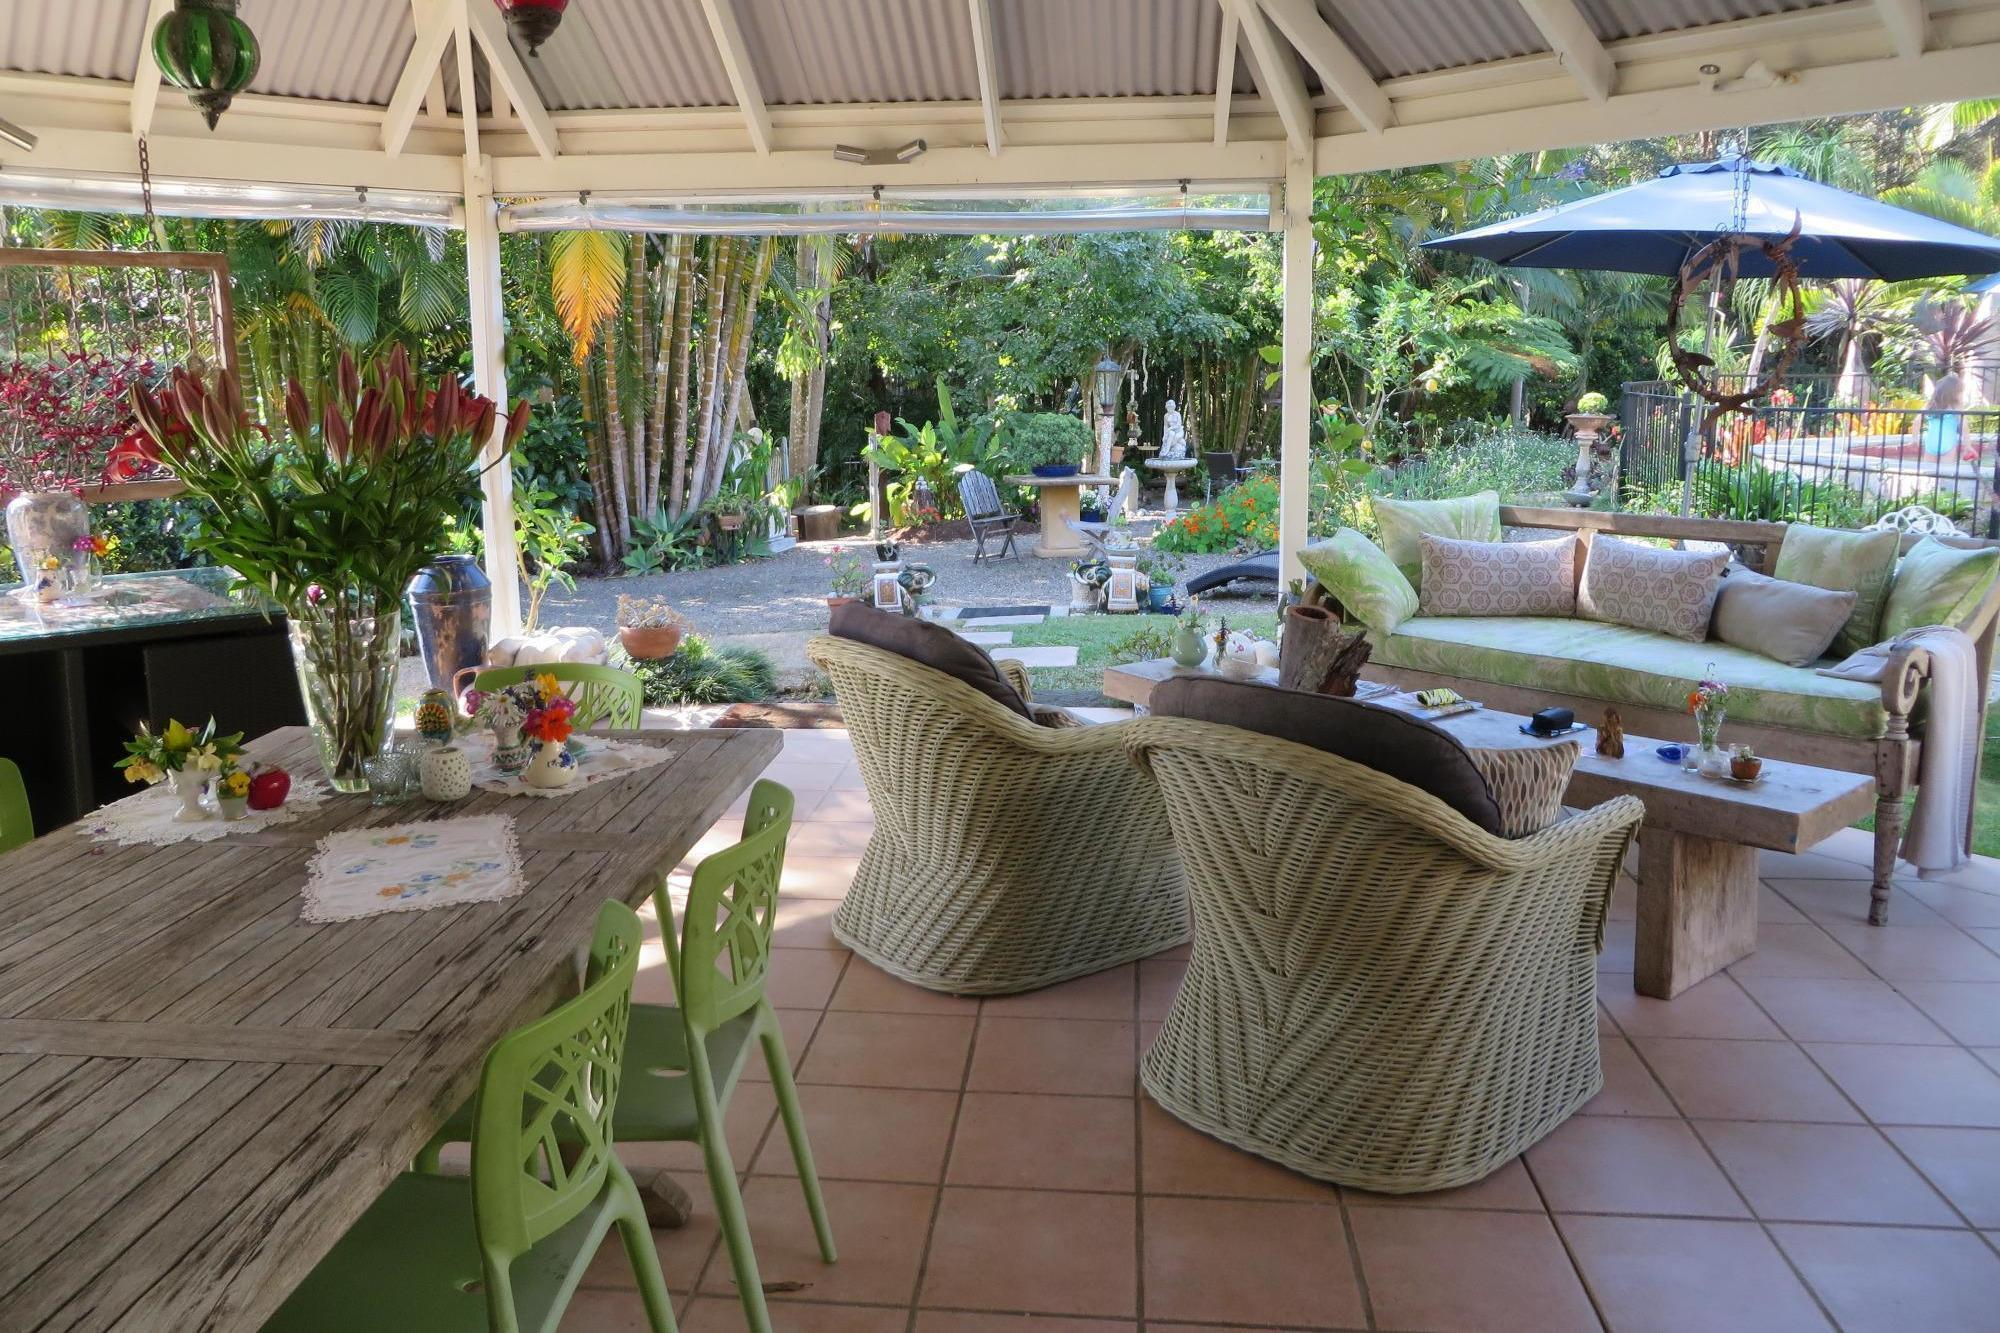 """The Noosa Valley Manor B&B can be found in the privacy of the rainforest in Queensland, Australia and all water used in the property is pure filtered rainwater. They also use chemical free cleaning products, have a recycling program in place, source produce from local growers and have organic and biodegradable room amenities. Find out more on their <a href=""""http://noosavalleymanor.com.au/facilities/"""" target=""""_blank"""">website</a>."""